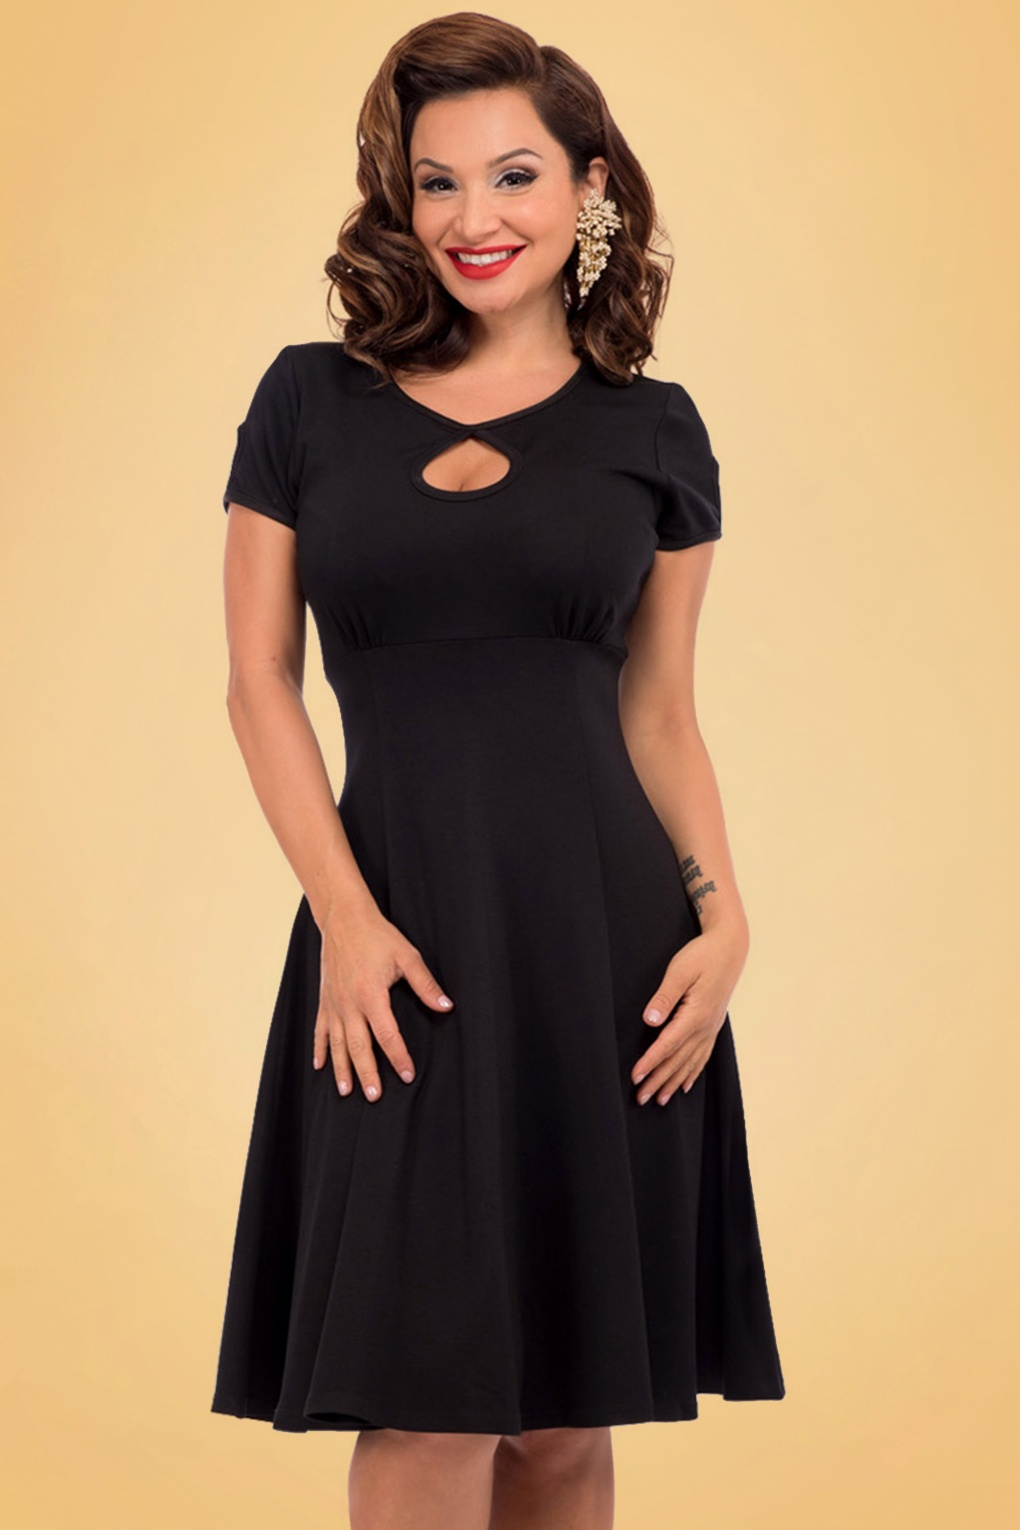 Dress Me Up Take Me Out: 50s Charm Me Keyhole Dress In Black